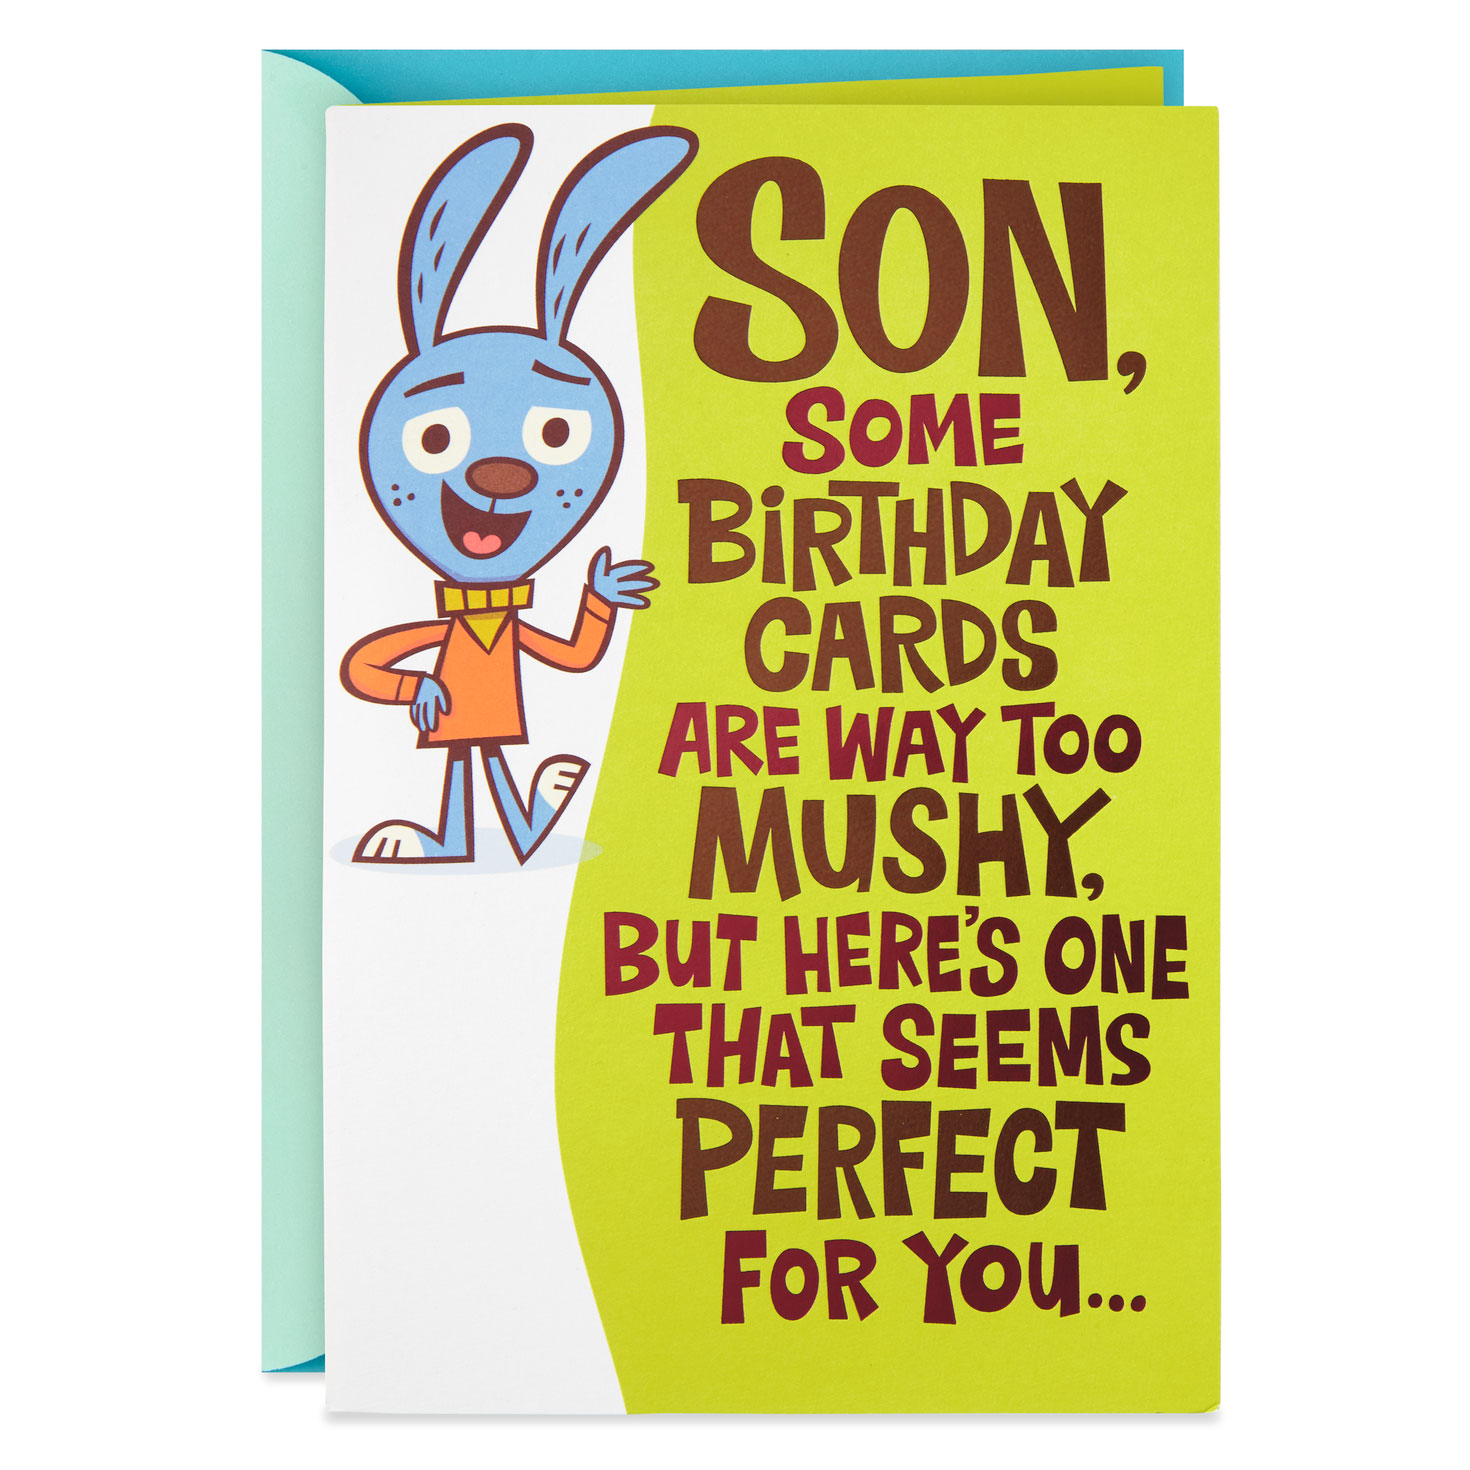 Love Fist Bump Funny Pop Up Birthday Card For Son